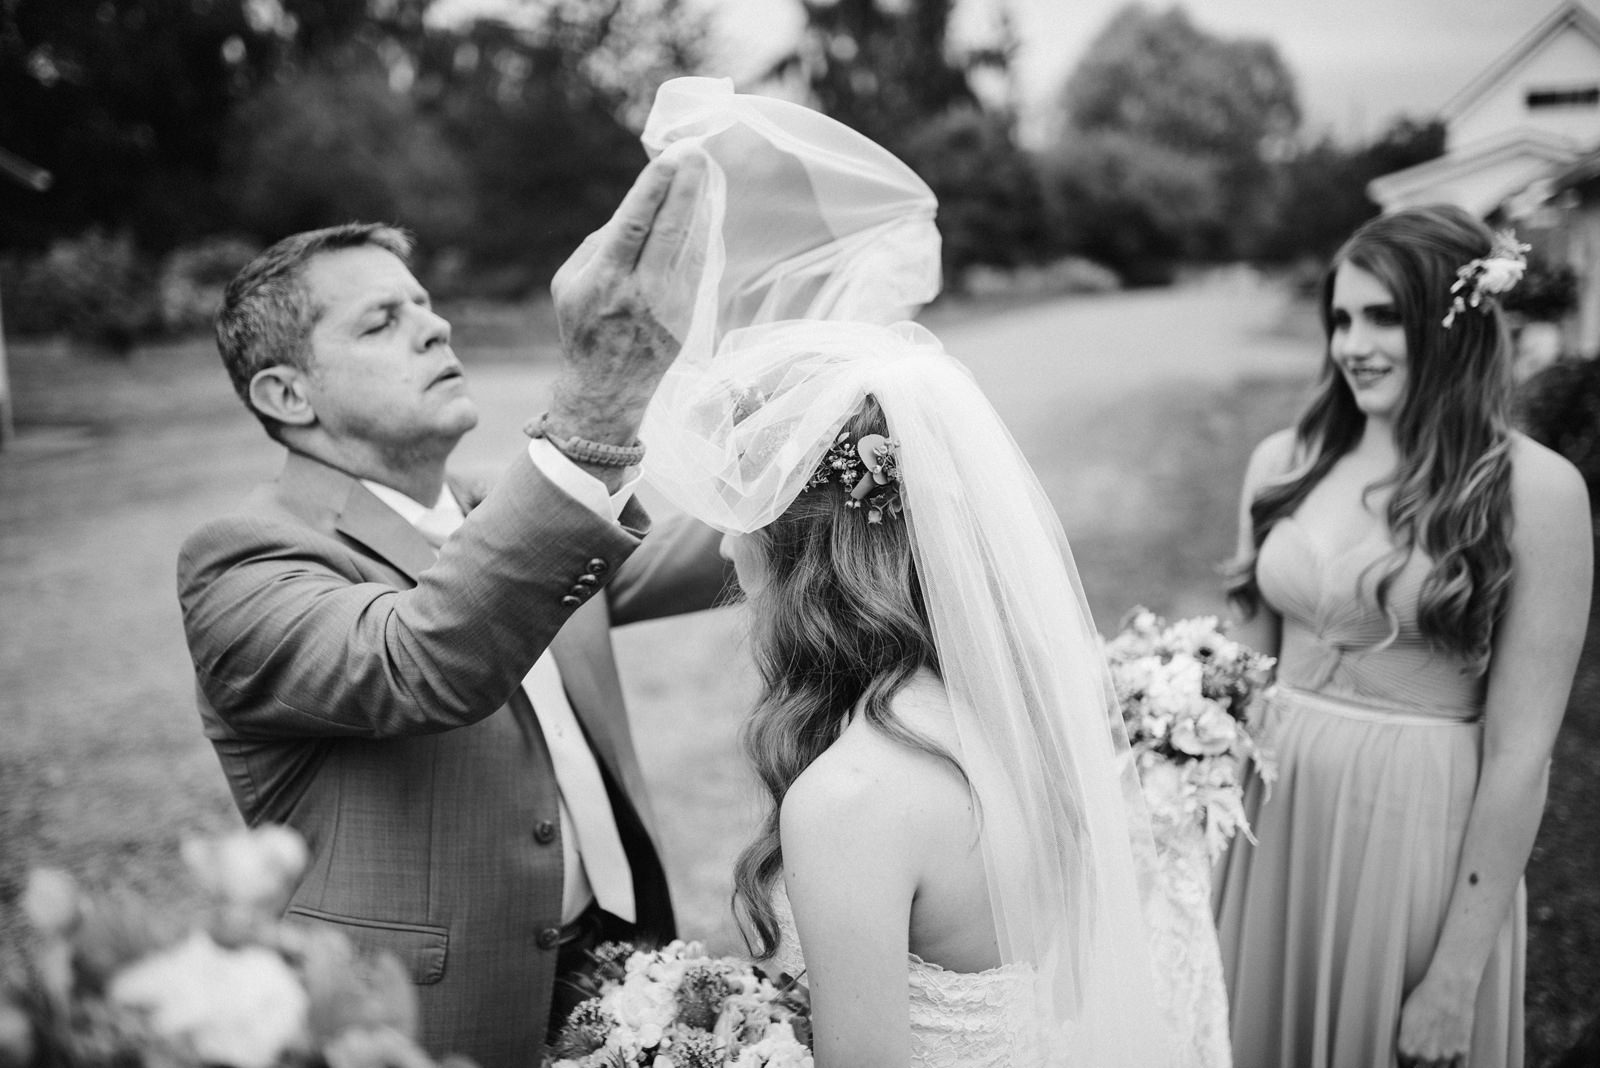 066-poignant-moment-between-father-and-bride-from-best-washington-wedding-photographer-ryan-flynn.jpg